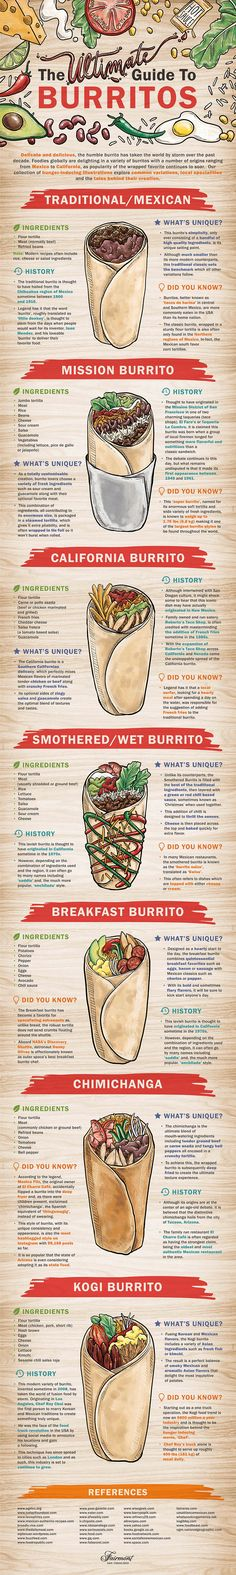 The Ultimate Guide to Burritos #infographic #Food #Burritos